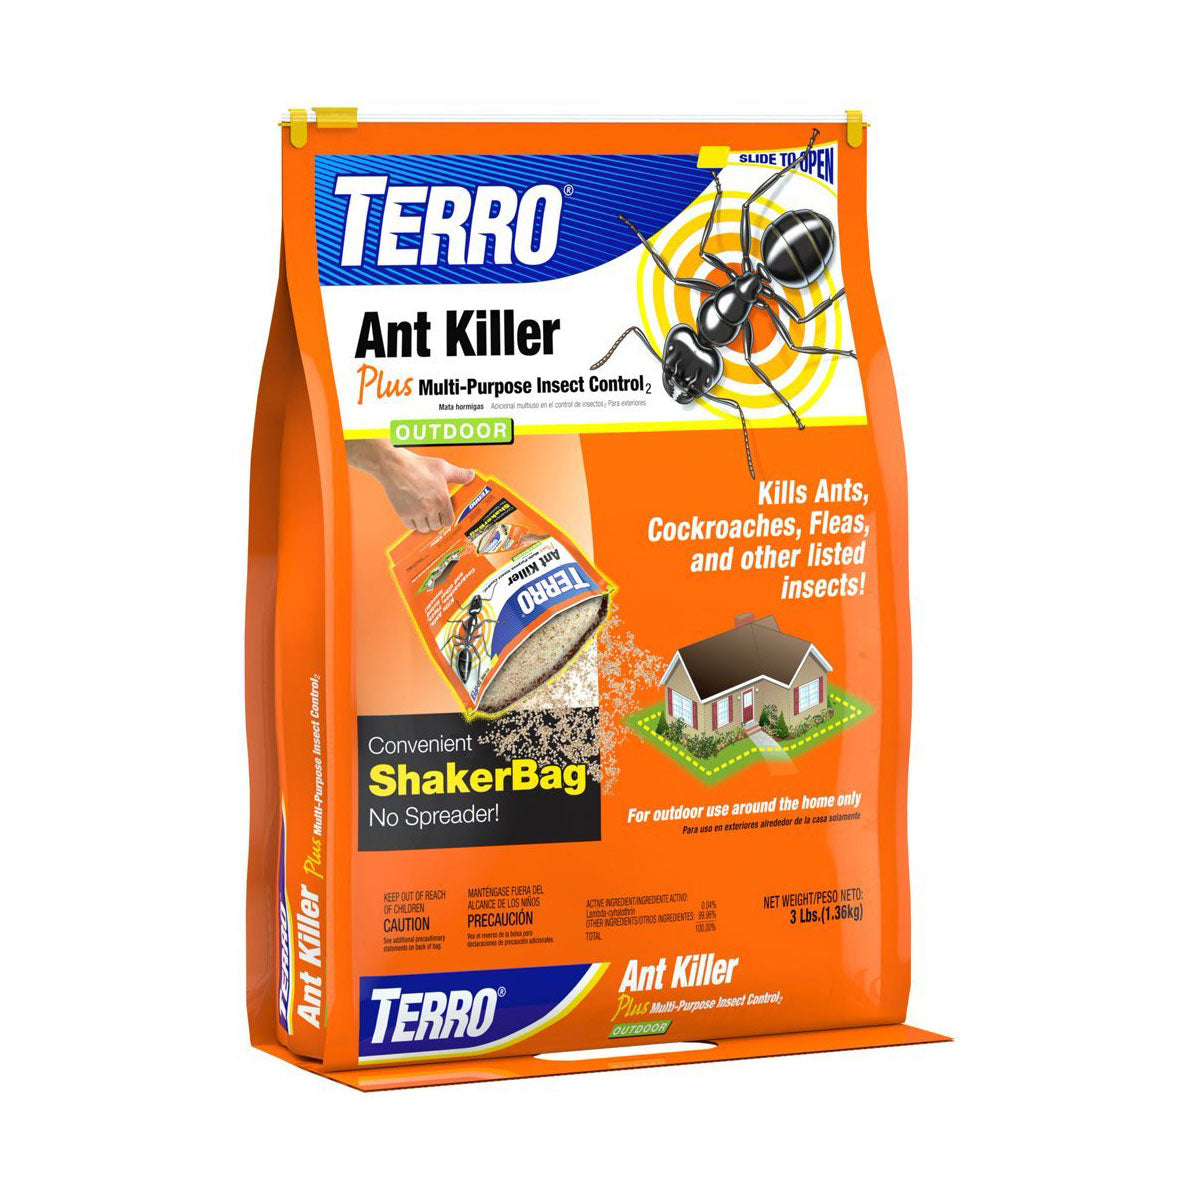 Terro S27-9016 T901-6 Ant Killer Plus Shaker Bag 3 Pounds